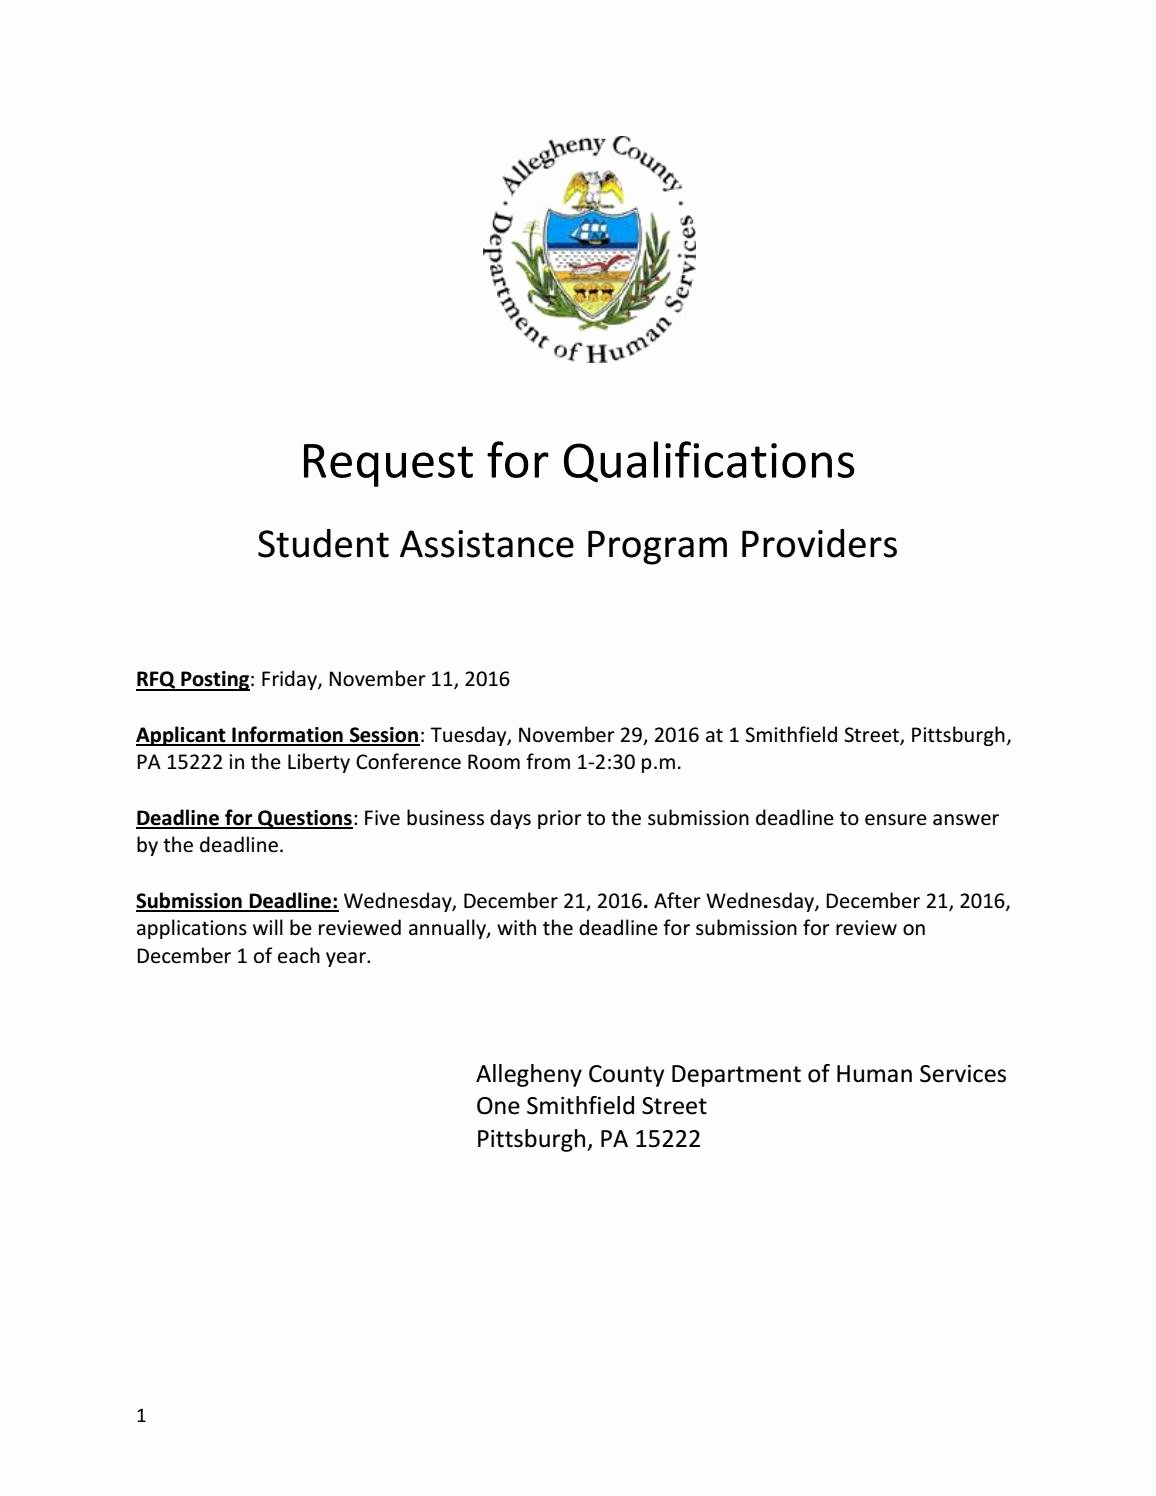 Request for Qualification Sample New Request for Qualifications by Acdhs issuu